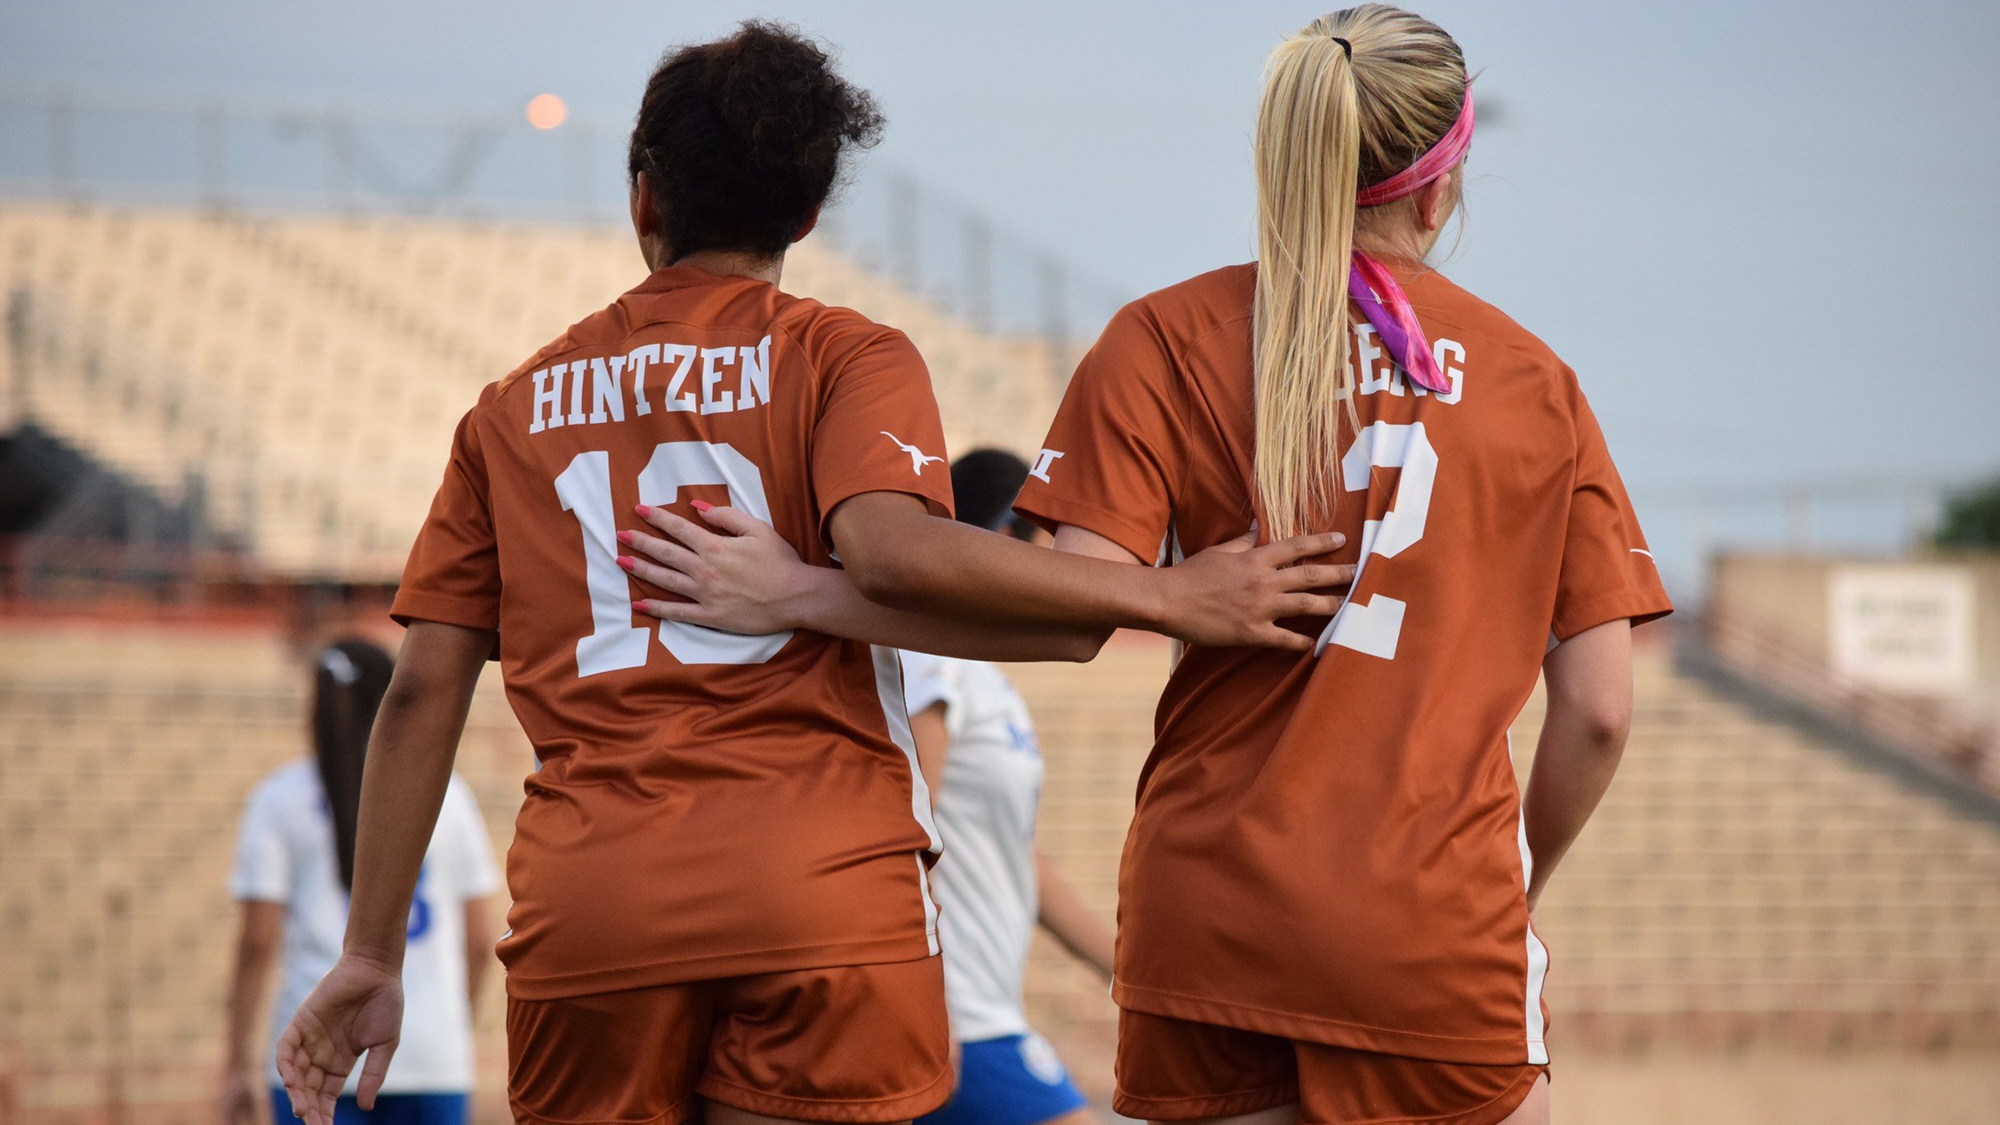 ec525b51aff Soccer Texas-Ex Abby Smith called up to U.S. Women s National Team -  University of Texas Athletics